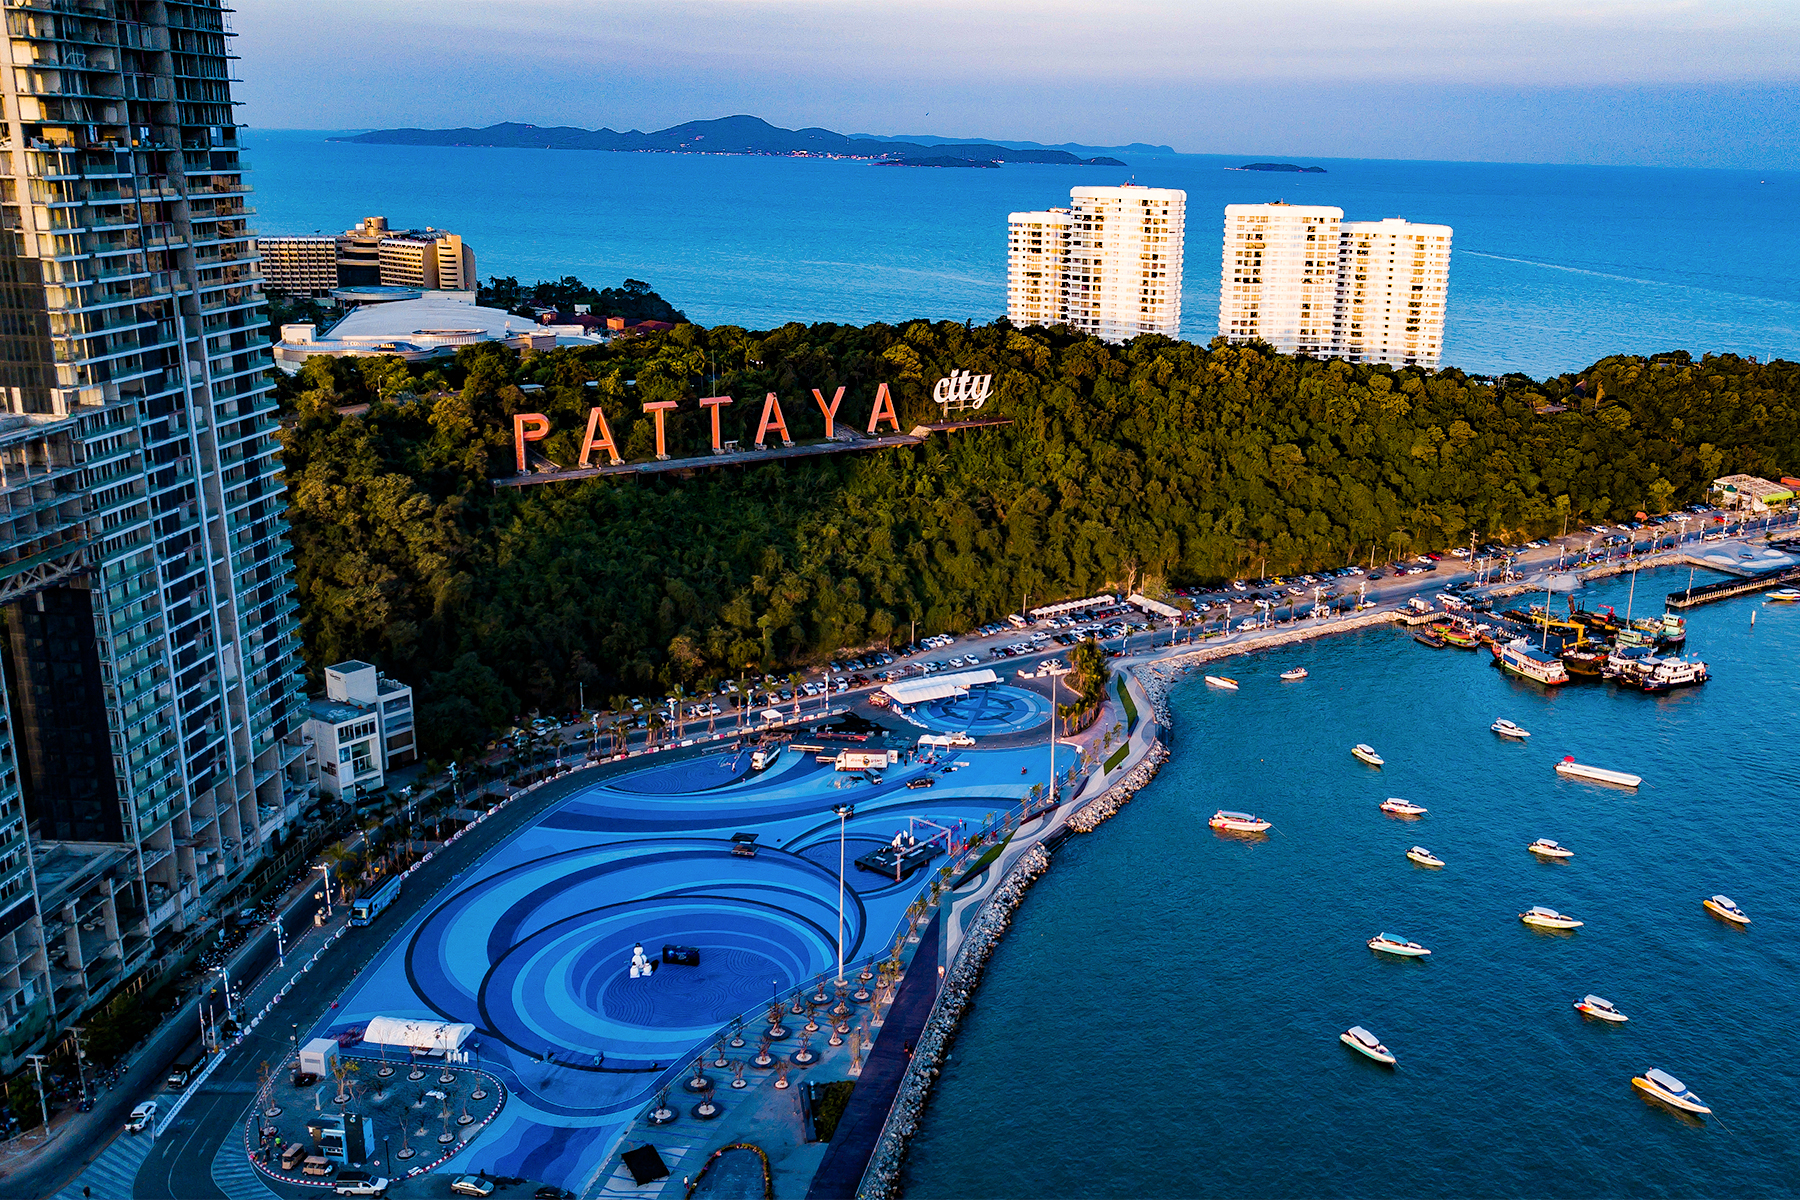 Travel Thursday: Attractions and Activities in Pattaya